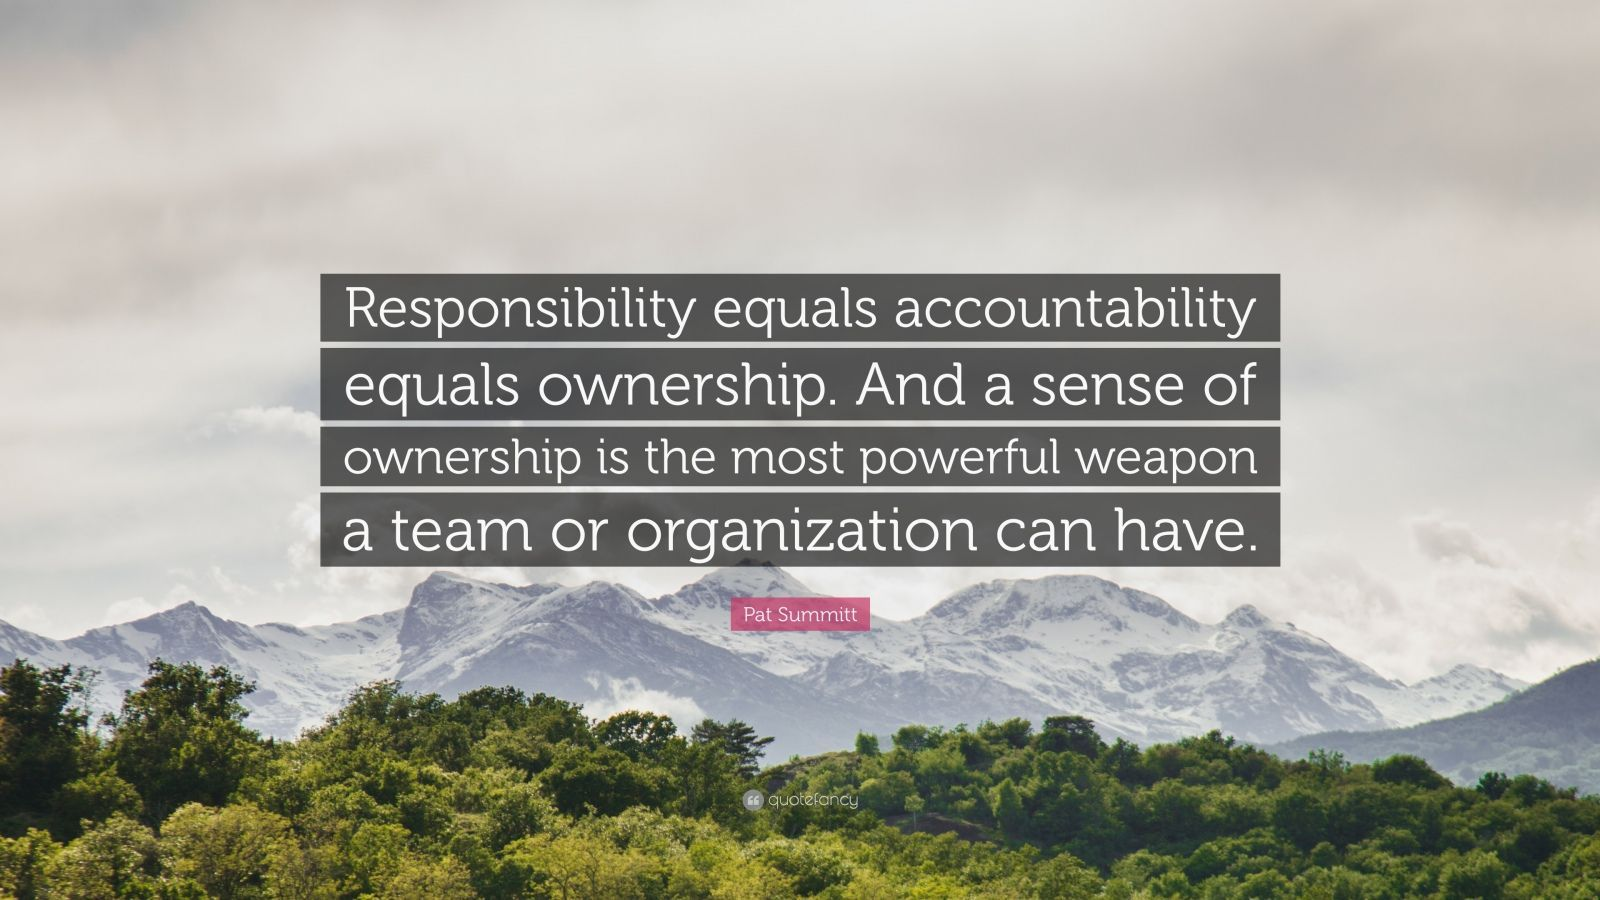 Pat Summitt Quote Responsibility Equals Accountability Equals Ownership And A Sense Of Ownership Is The Most P Positive Quotes Positive Attitude Quotes Life